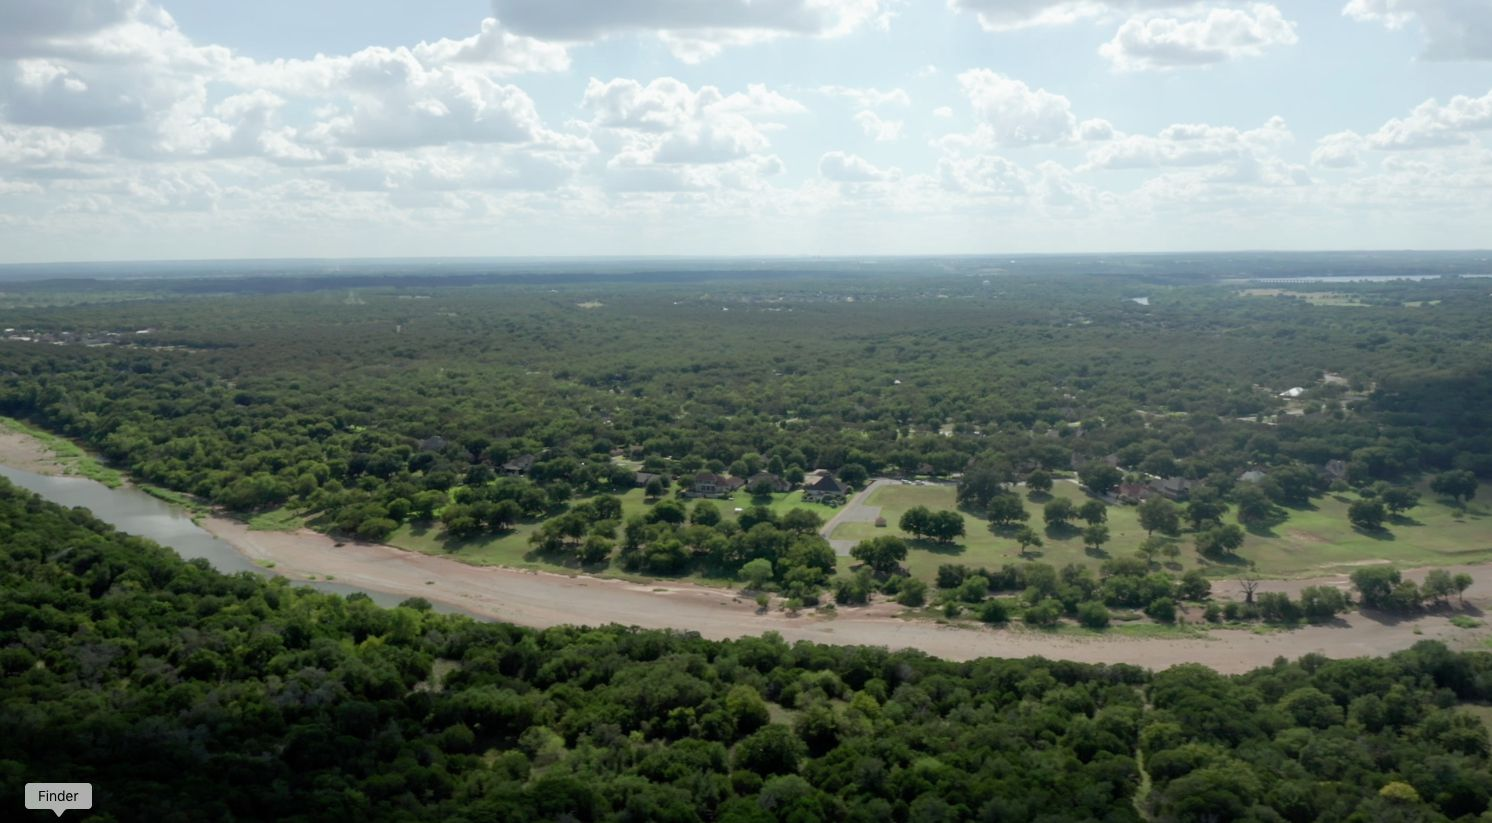 More than 1,500 acres of pecan groves are for sale.